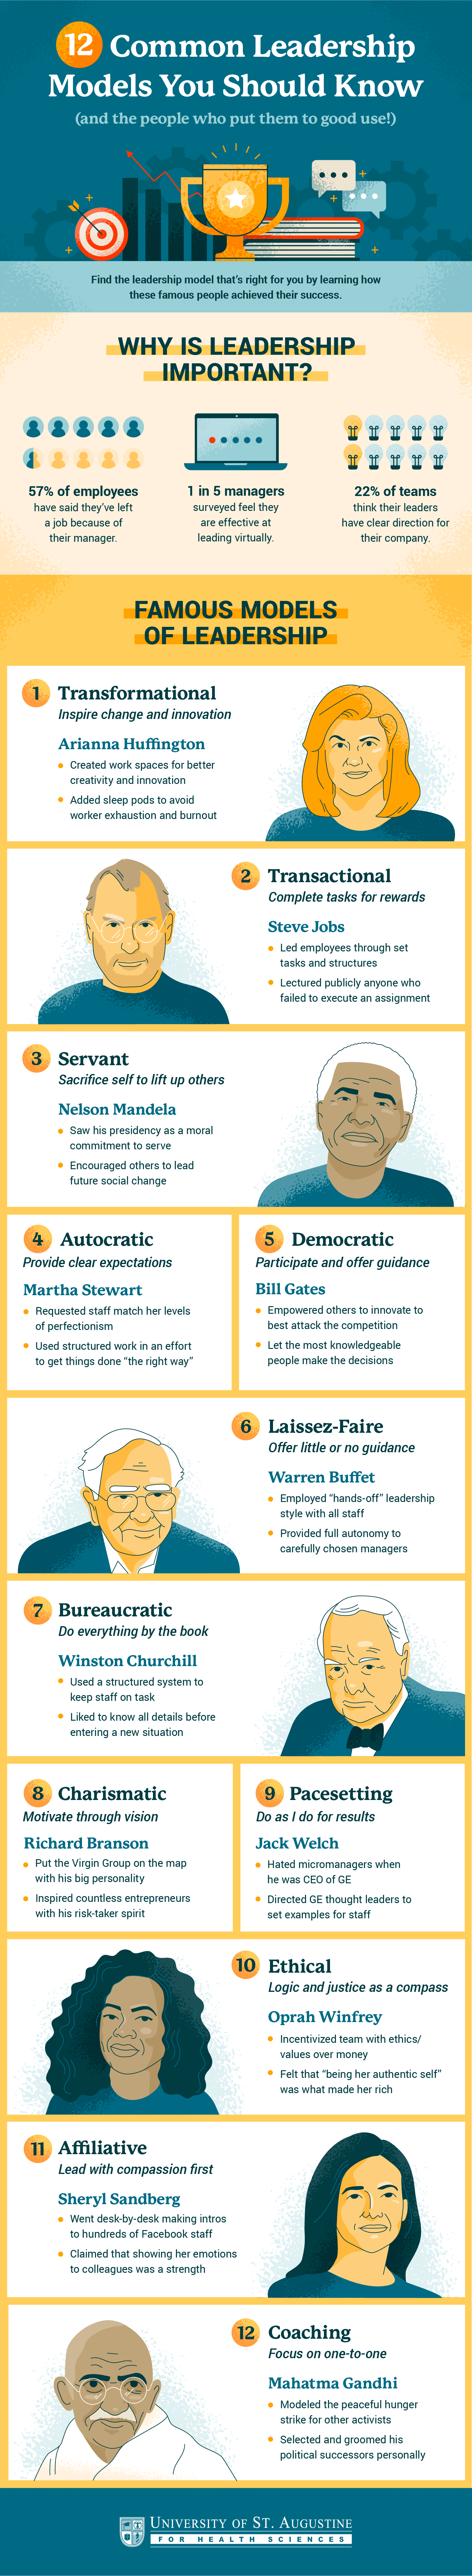 common leadership models infographic